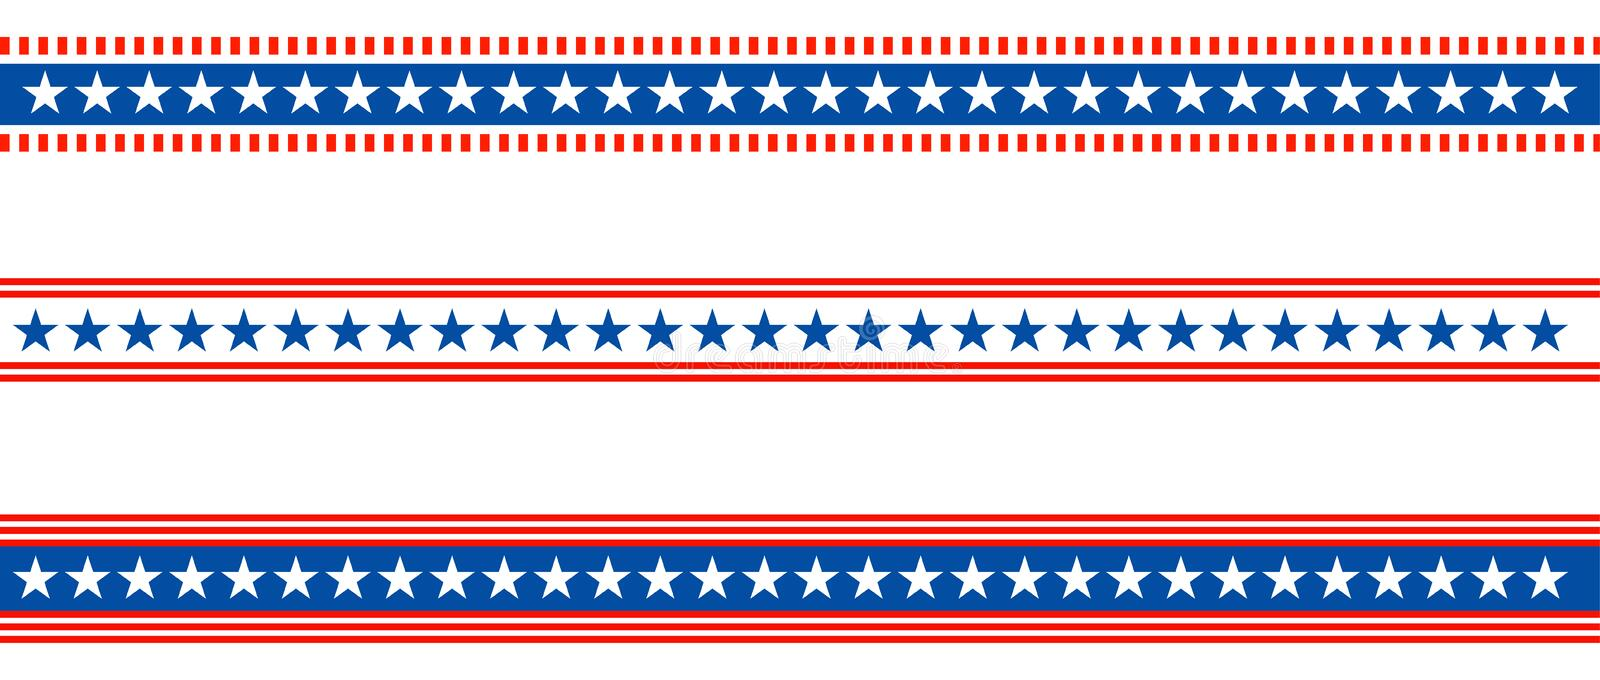 Patriotic border divider american usa flag. Vector illustration of american patriotic border divider with stars like flag